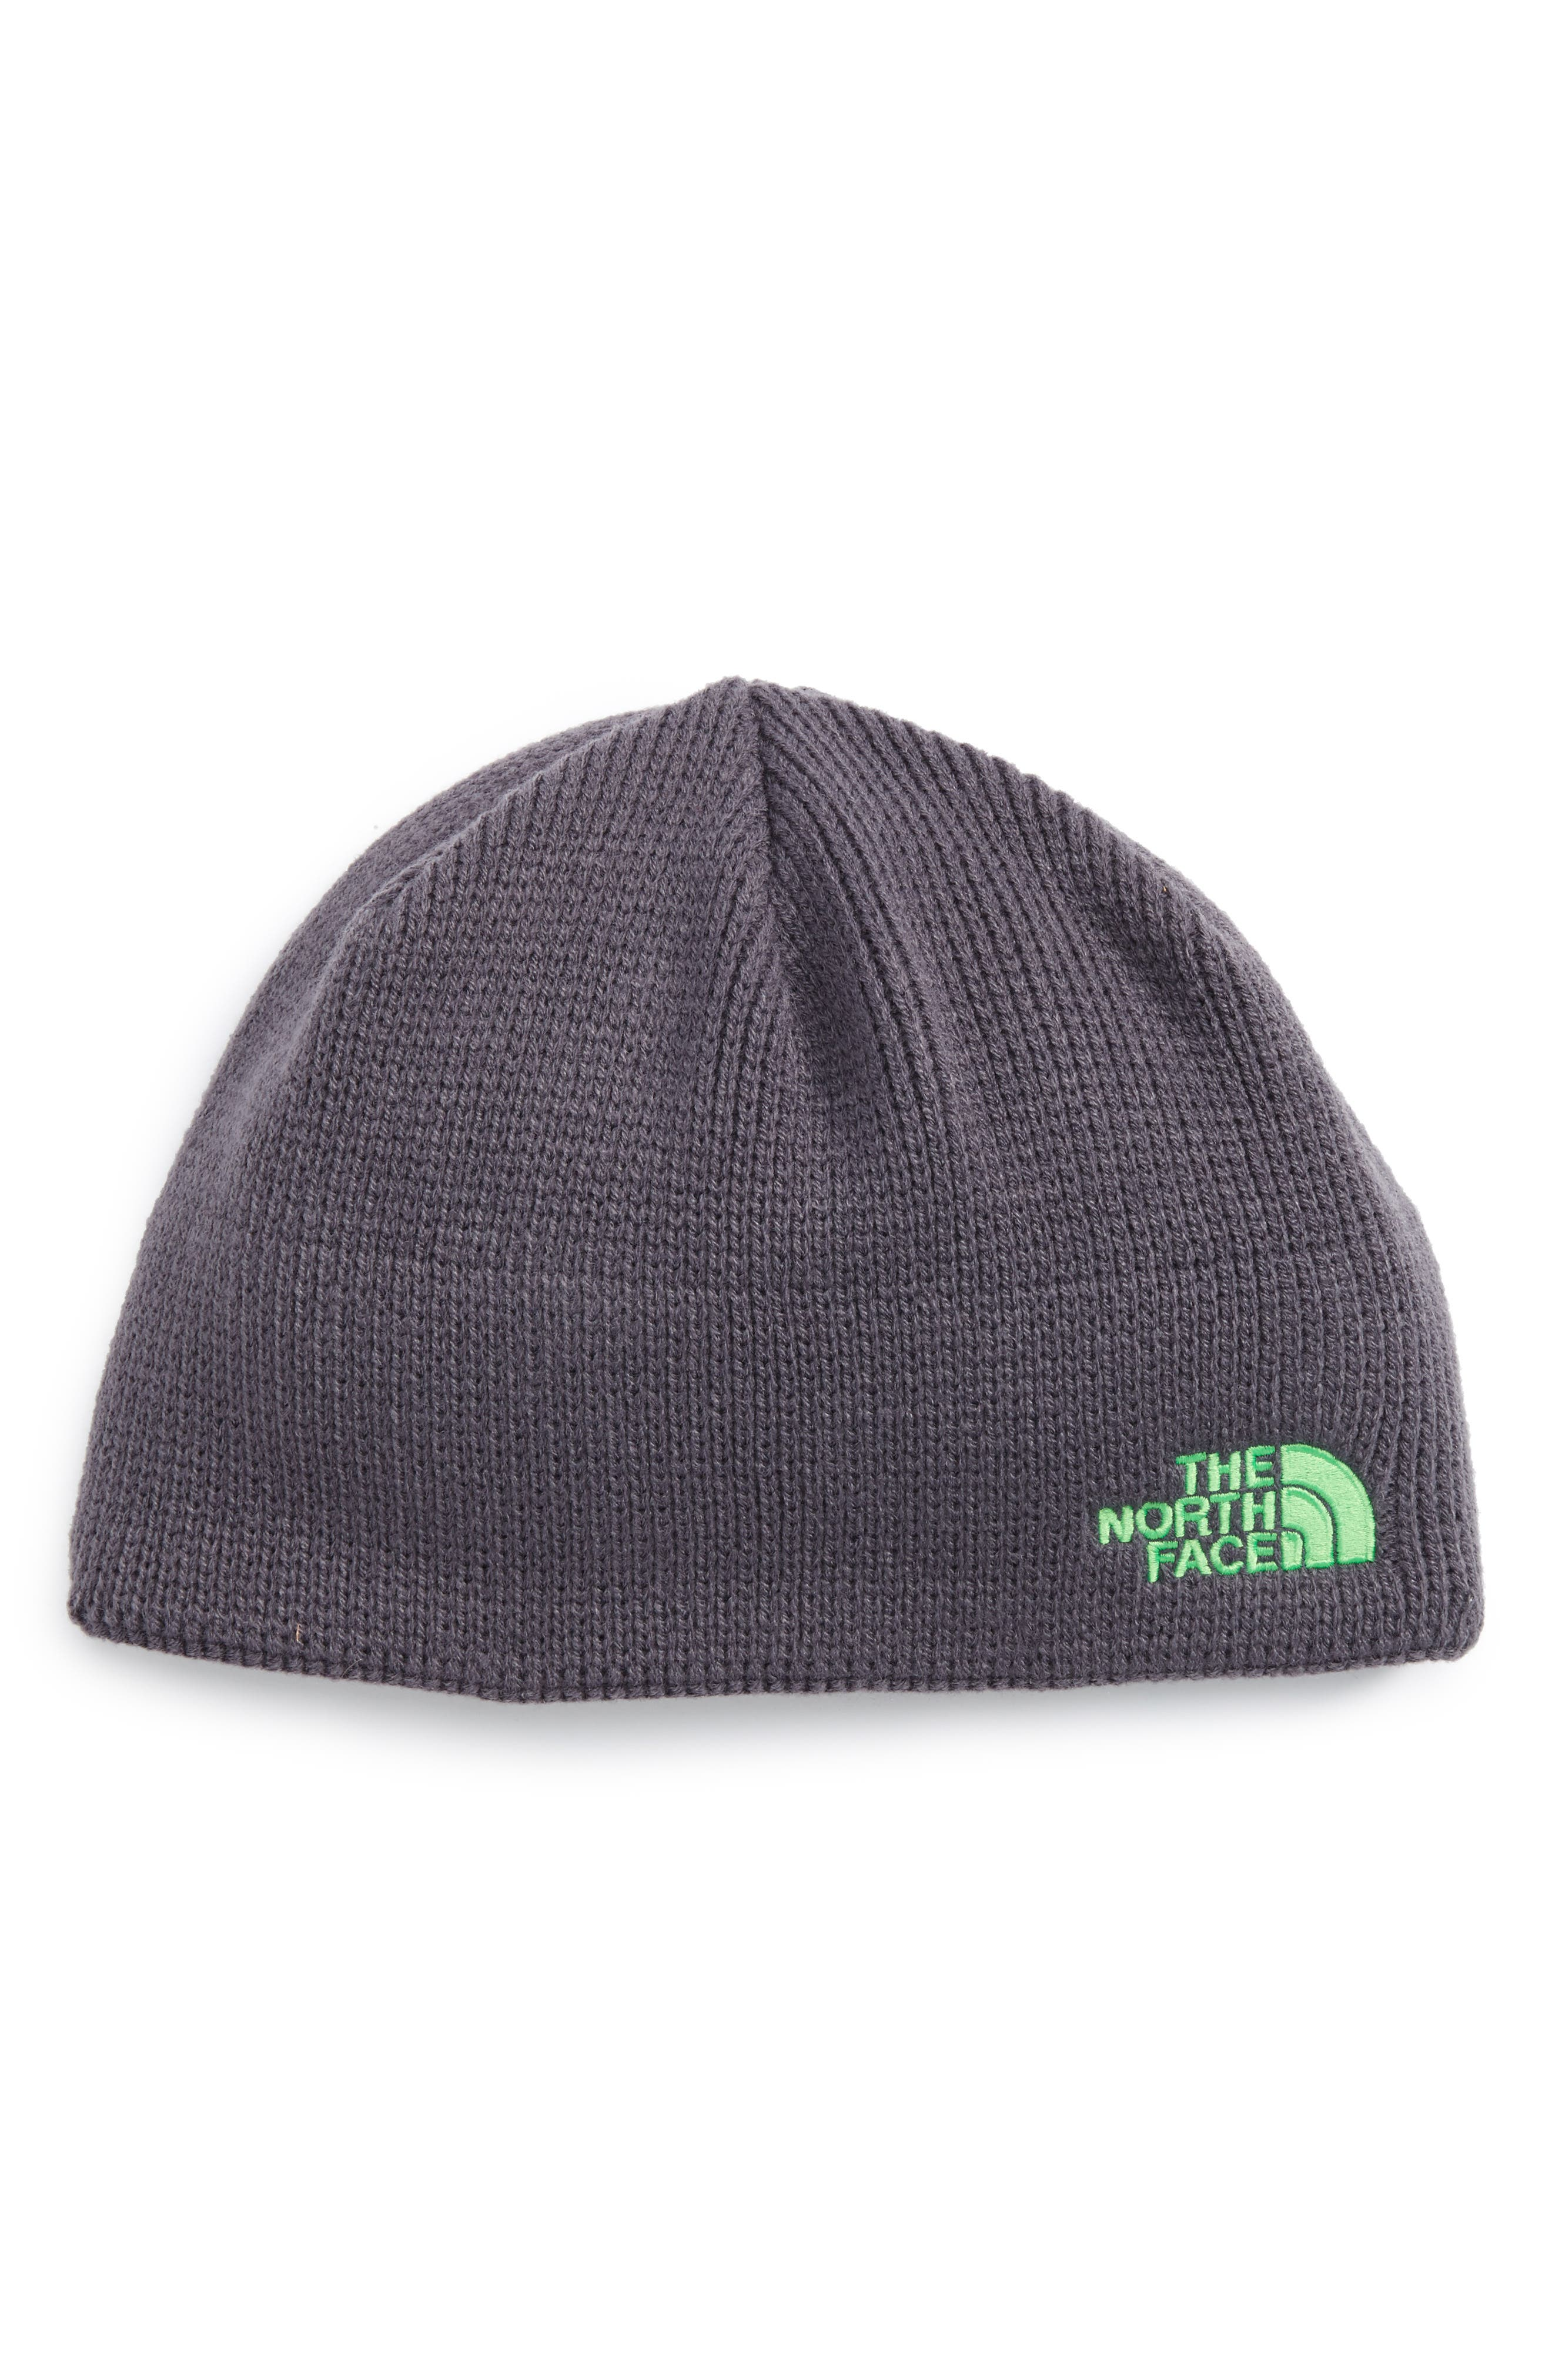 Youth Bones Fleece Lined Beanie,                         Main,                         color, Graphite Grey/ Krypton Green